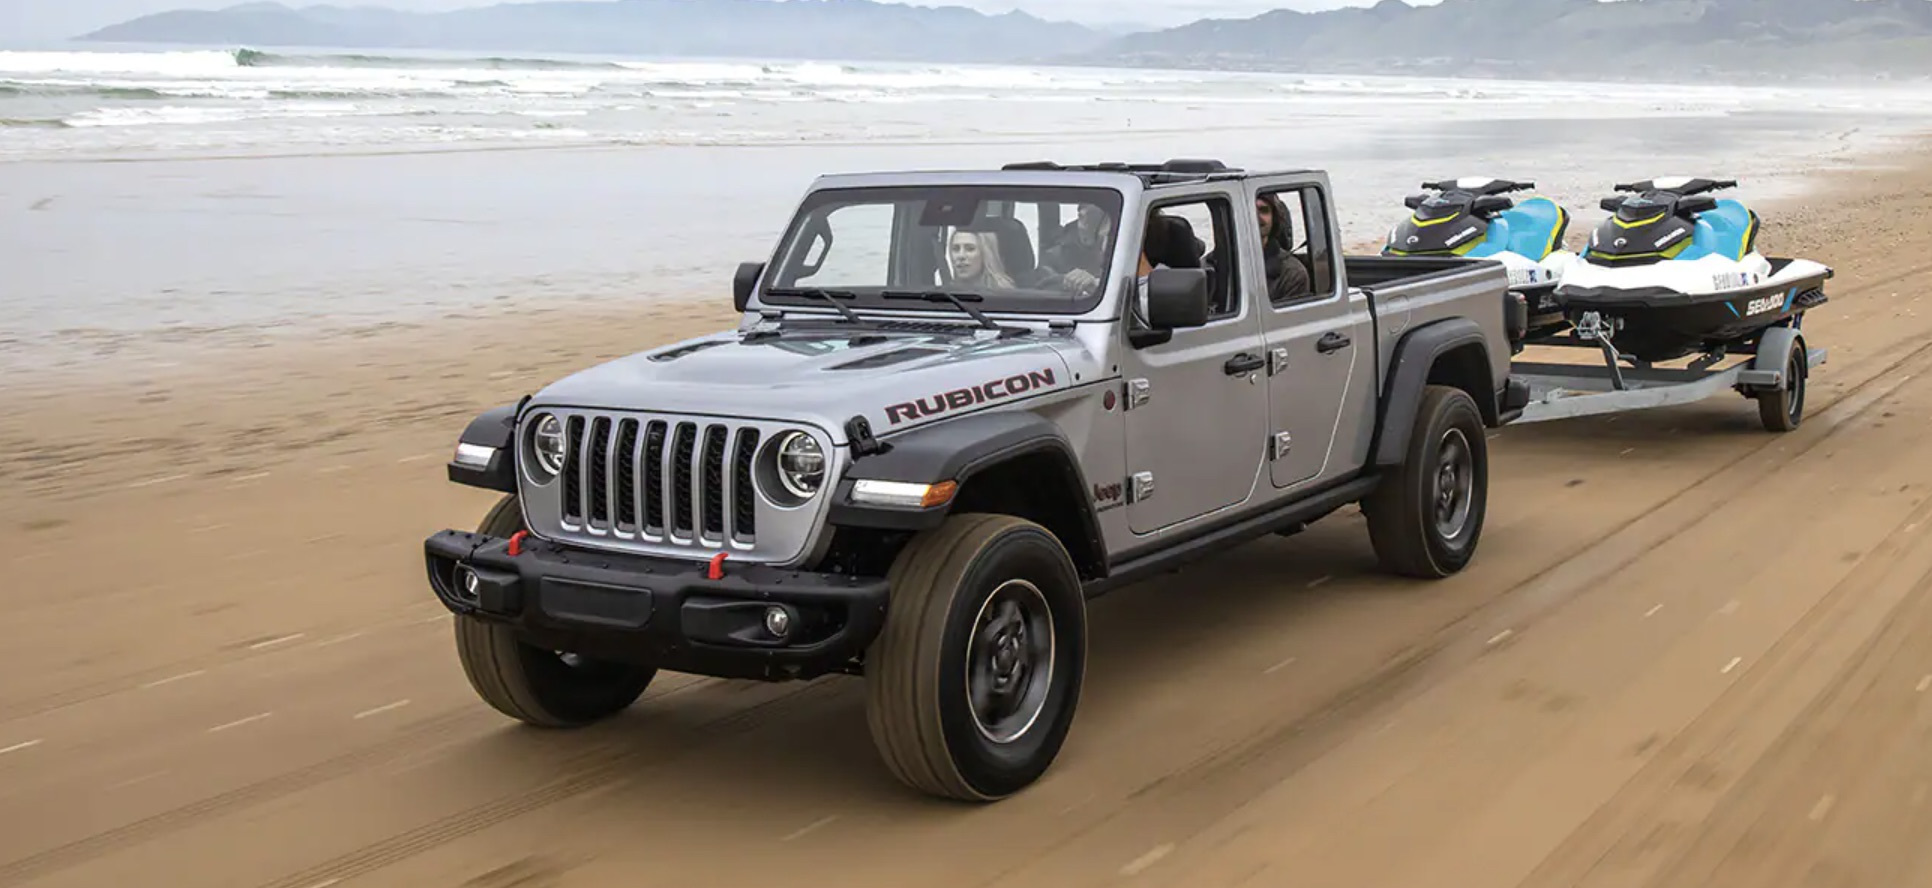 A gray 2021 Jeep Gladiator towing jet skis off-road on the beach by the mountains